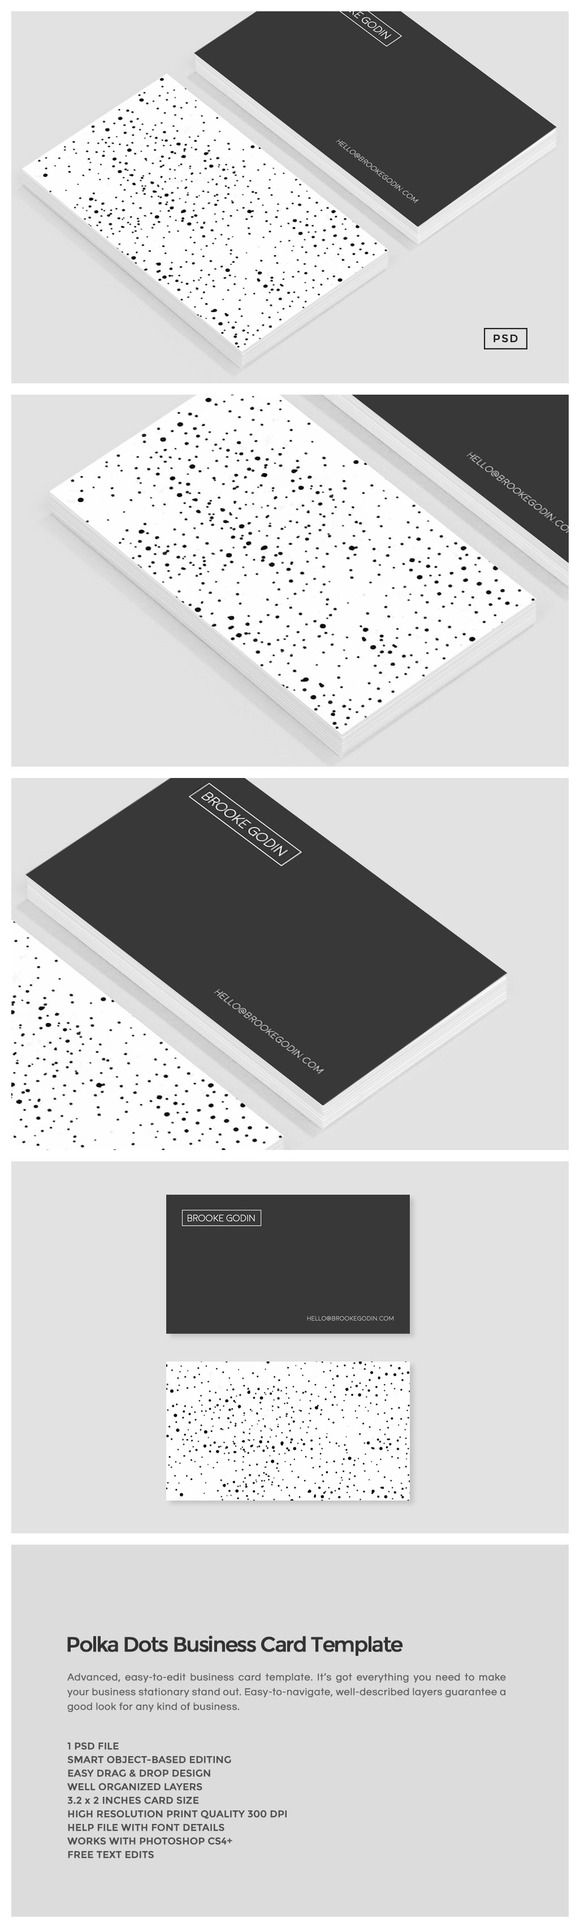 Polka Dots Business Card Template  This Double-sided business card design has a beautiful random and intentionally uneven polka dots pattern on the back. The simple black and white te... https://creativemarket.com/MeeraG/205635-Polka-Dots-Business-Card-Template?u=MeeraG&utm_source=Link&utm_medium=CM+Social+Share&utm_campaign=Product+Social+Share&utm_content=Polka+Dots+Business+Card+Template+~+Business+Card+Templates+on+Creative+Market